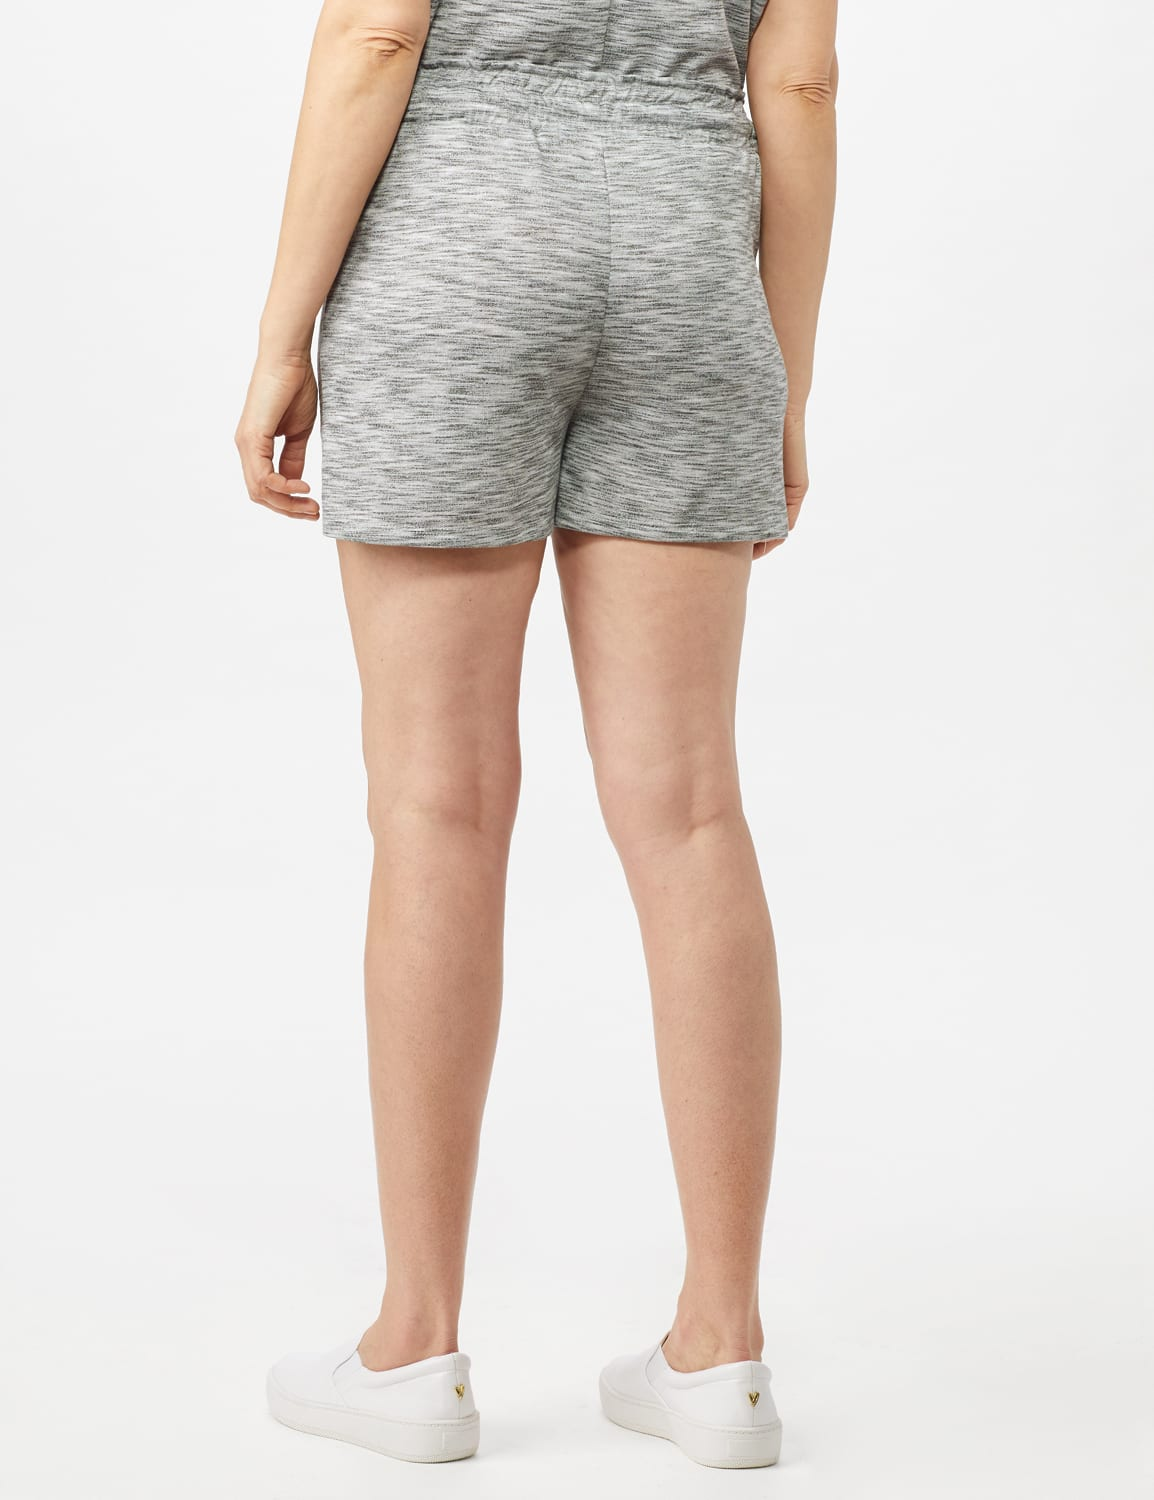 Space Dye French Terry Short - Grey - Back